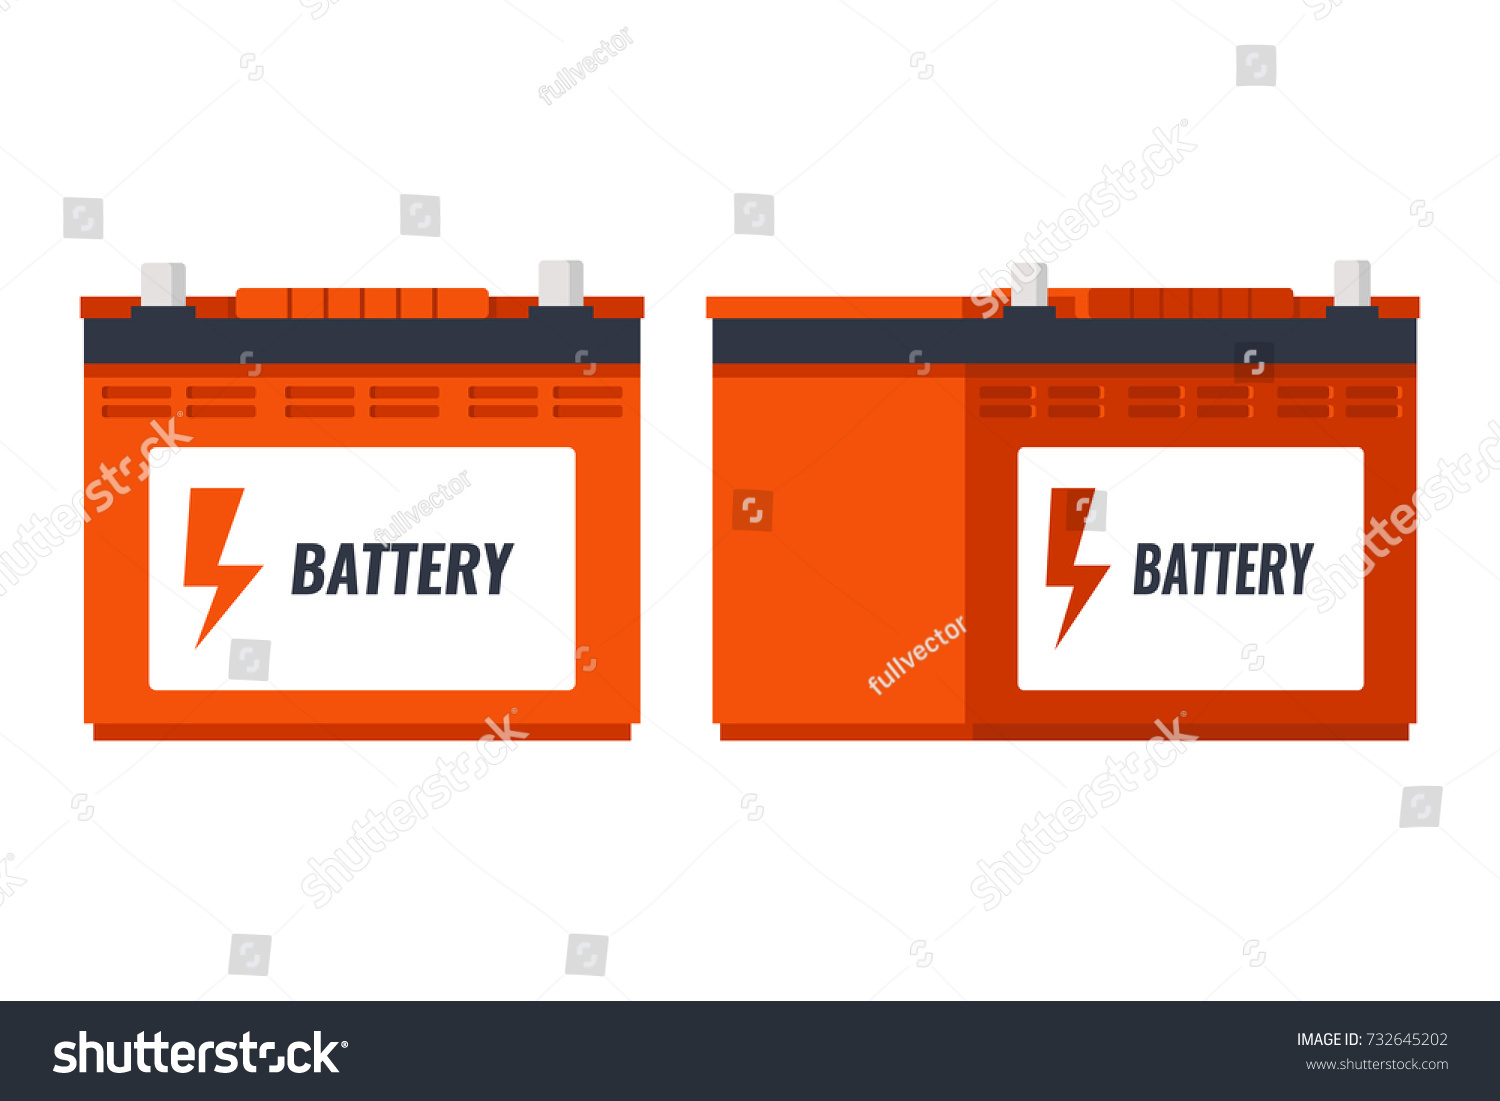 Car Battery Icon Isolated On White Stock Vector Royalty Free Diagram Background Accumulator Energy Power And Electricity